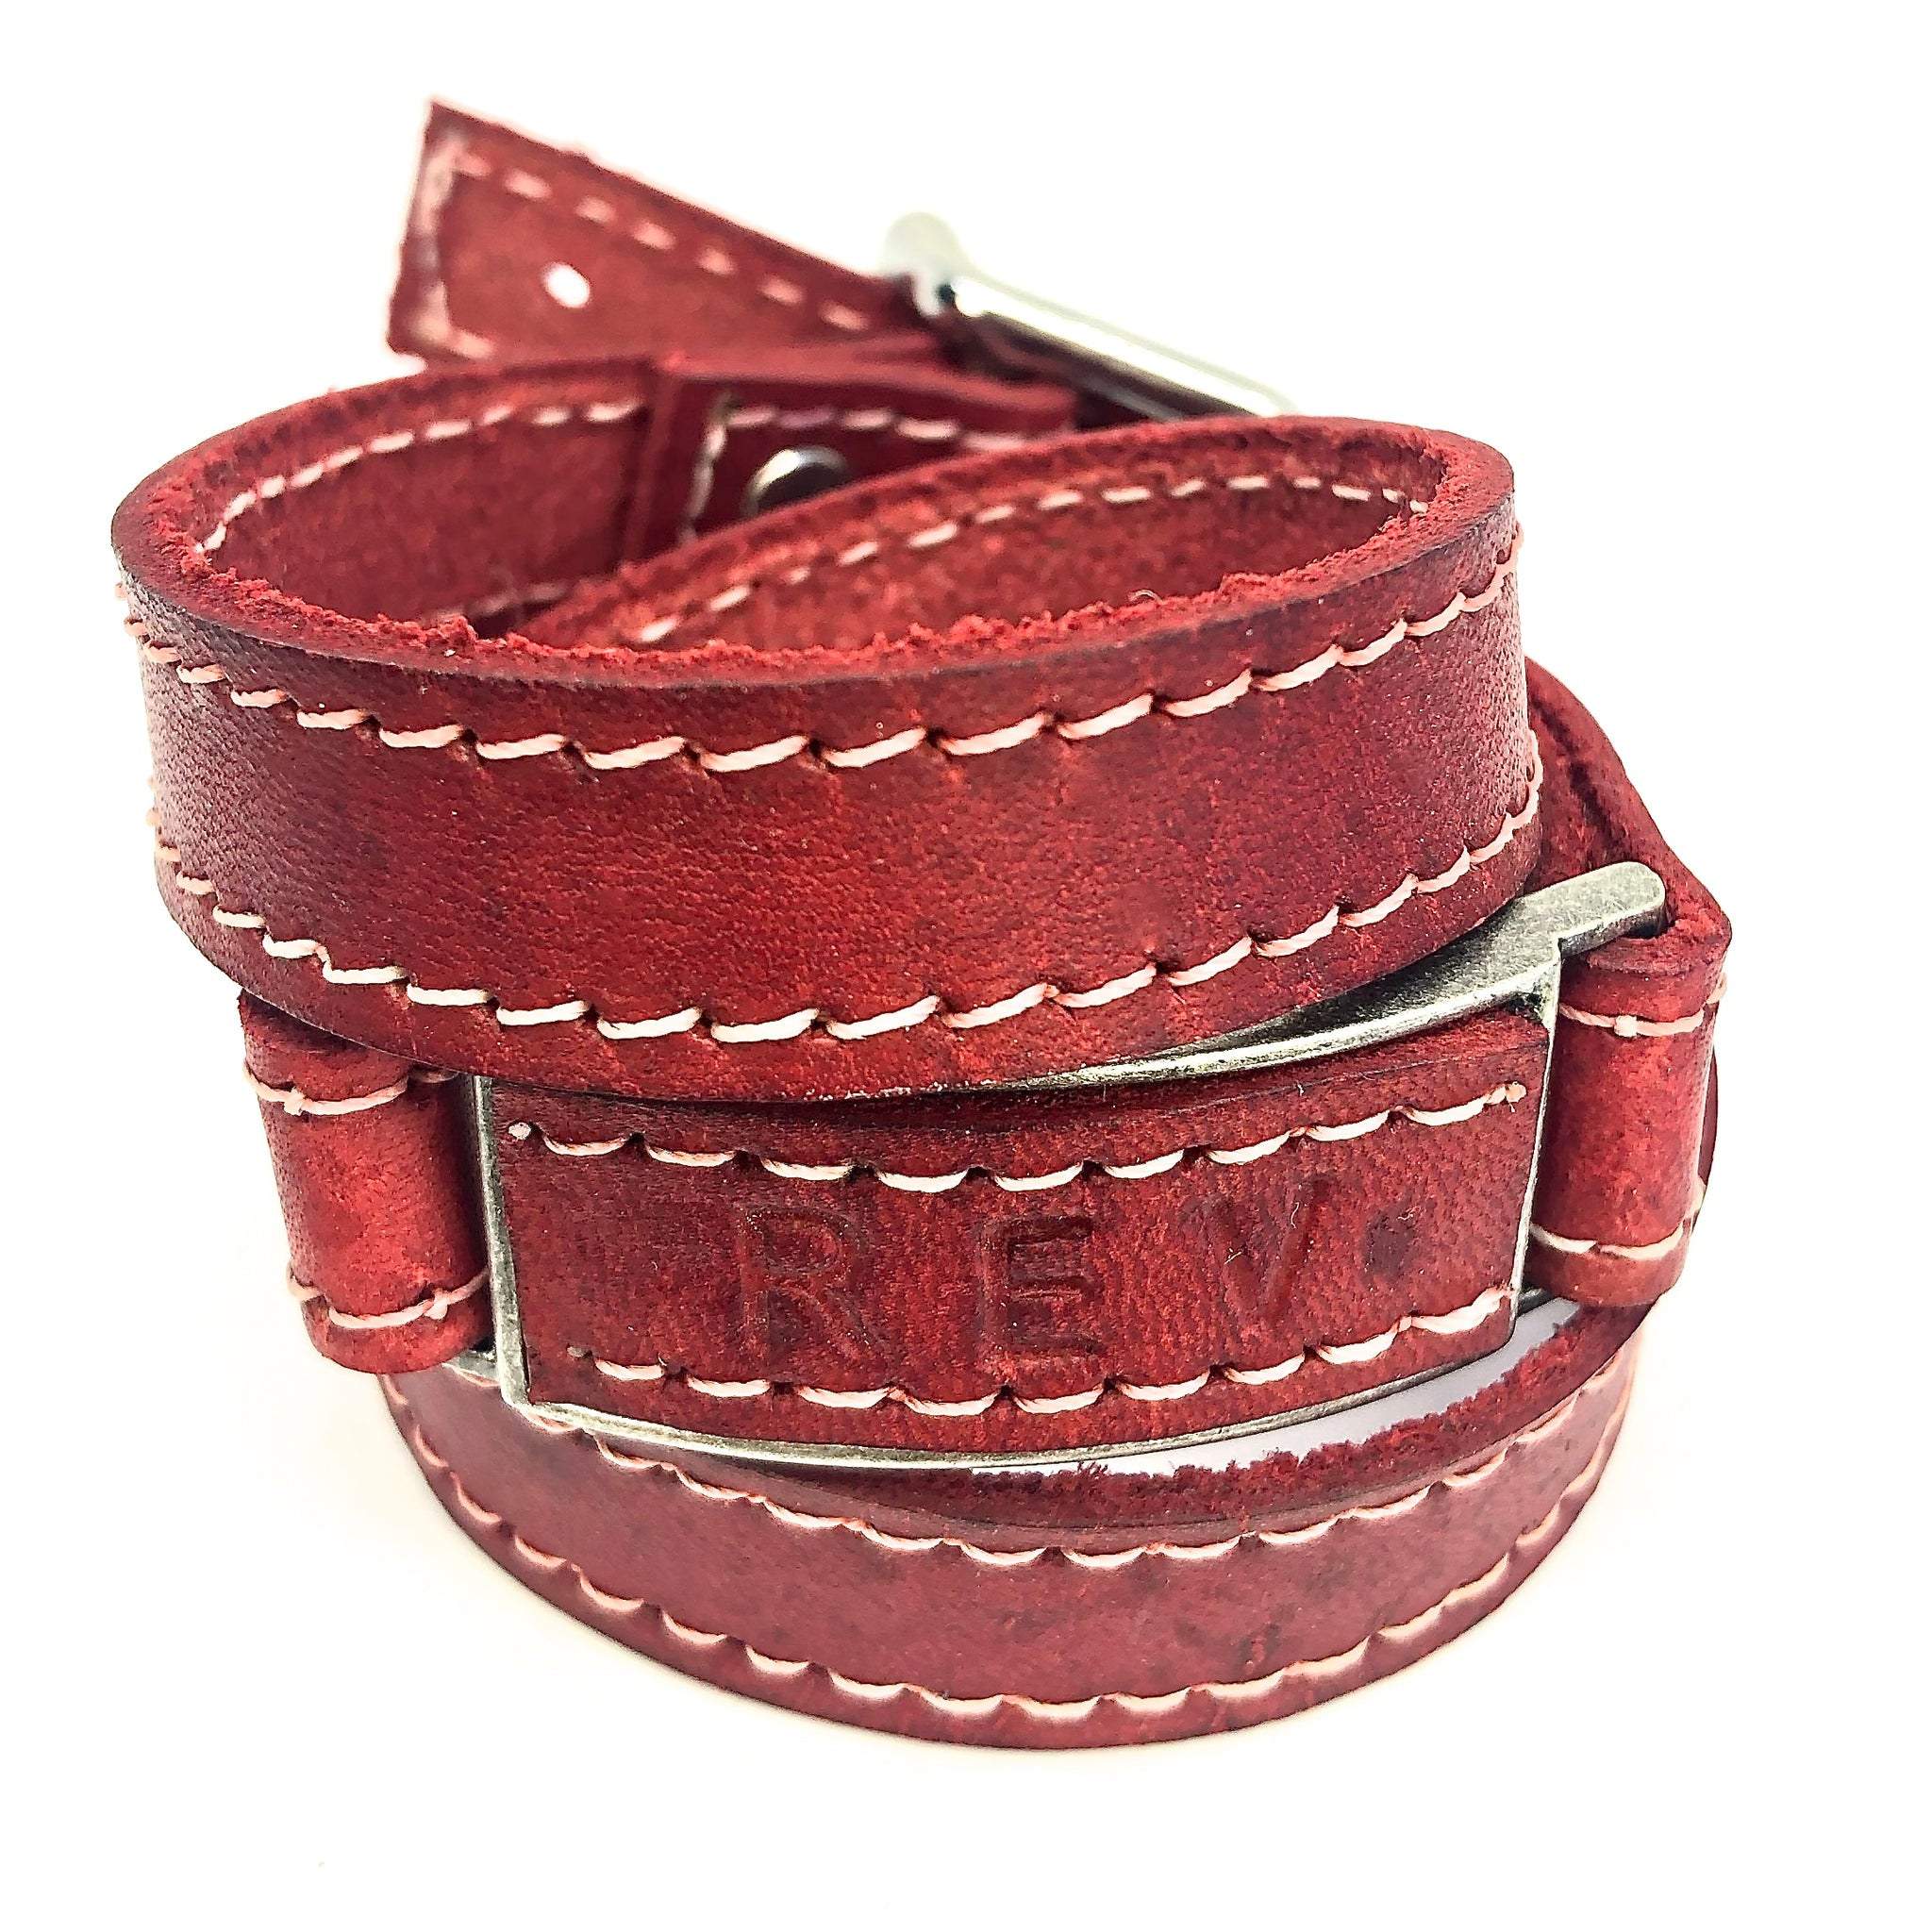 LEATHER WRAPAROUND WITH METAL LINK INLAID WITH MATCHING PIECE OF LEATHER WITH CUSTOM ENGRAVING by nyet jewelry